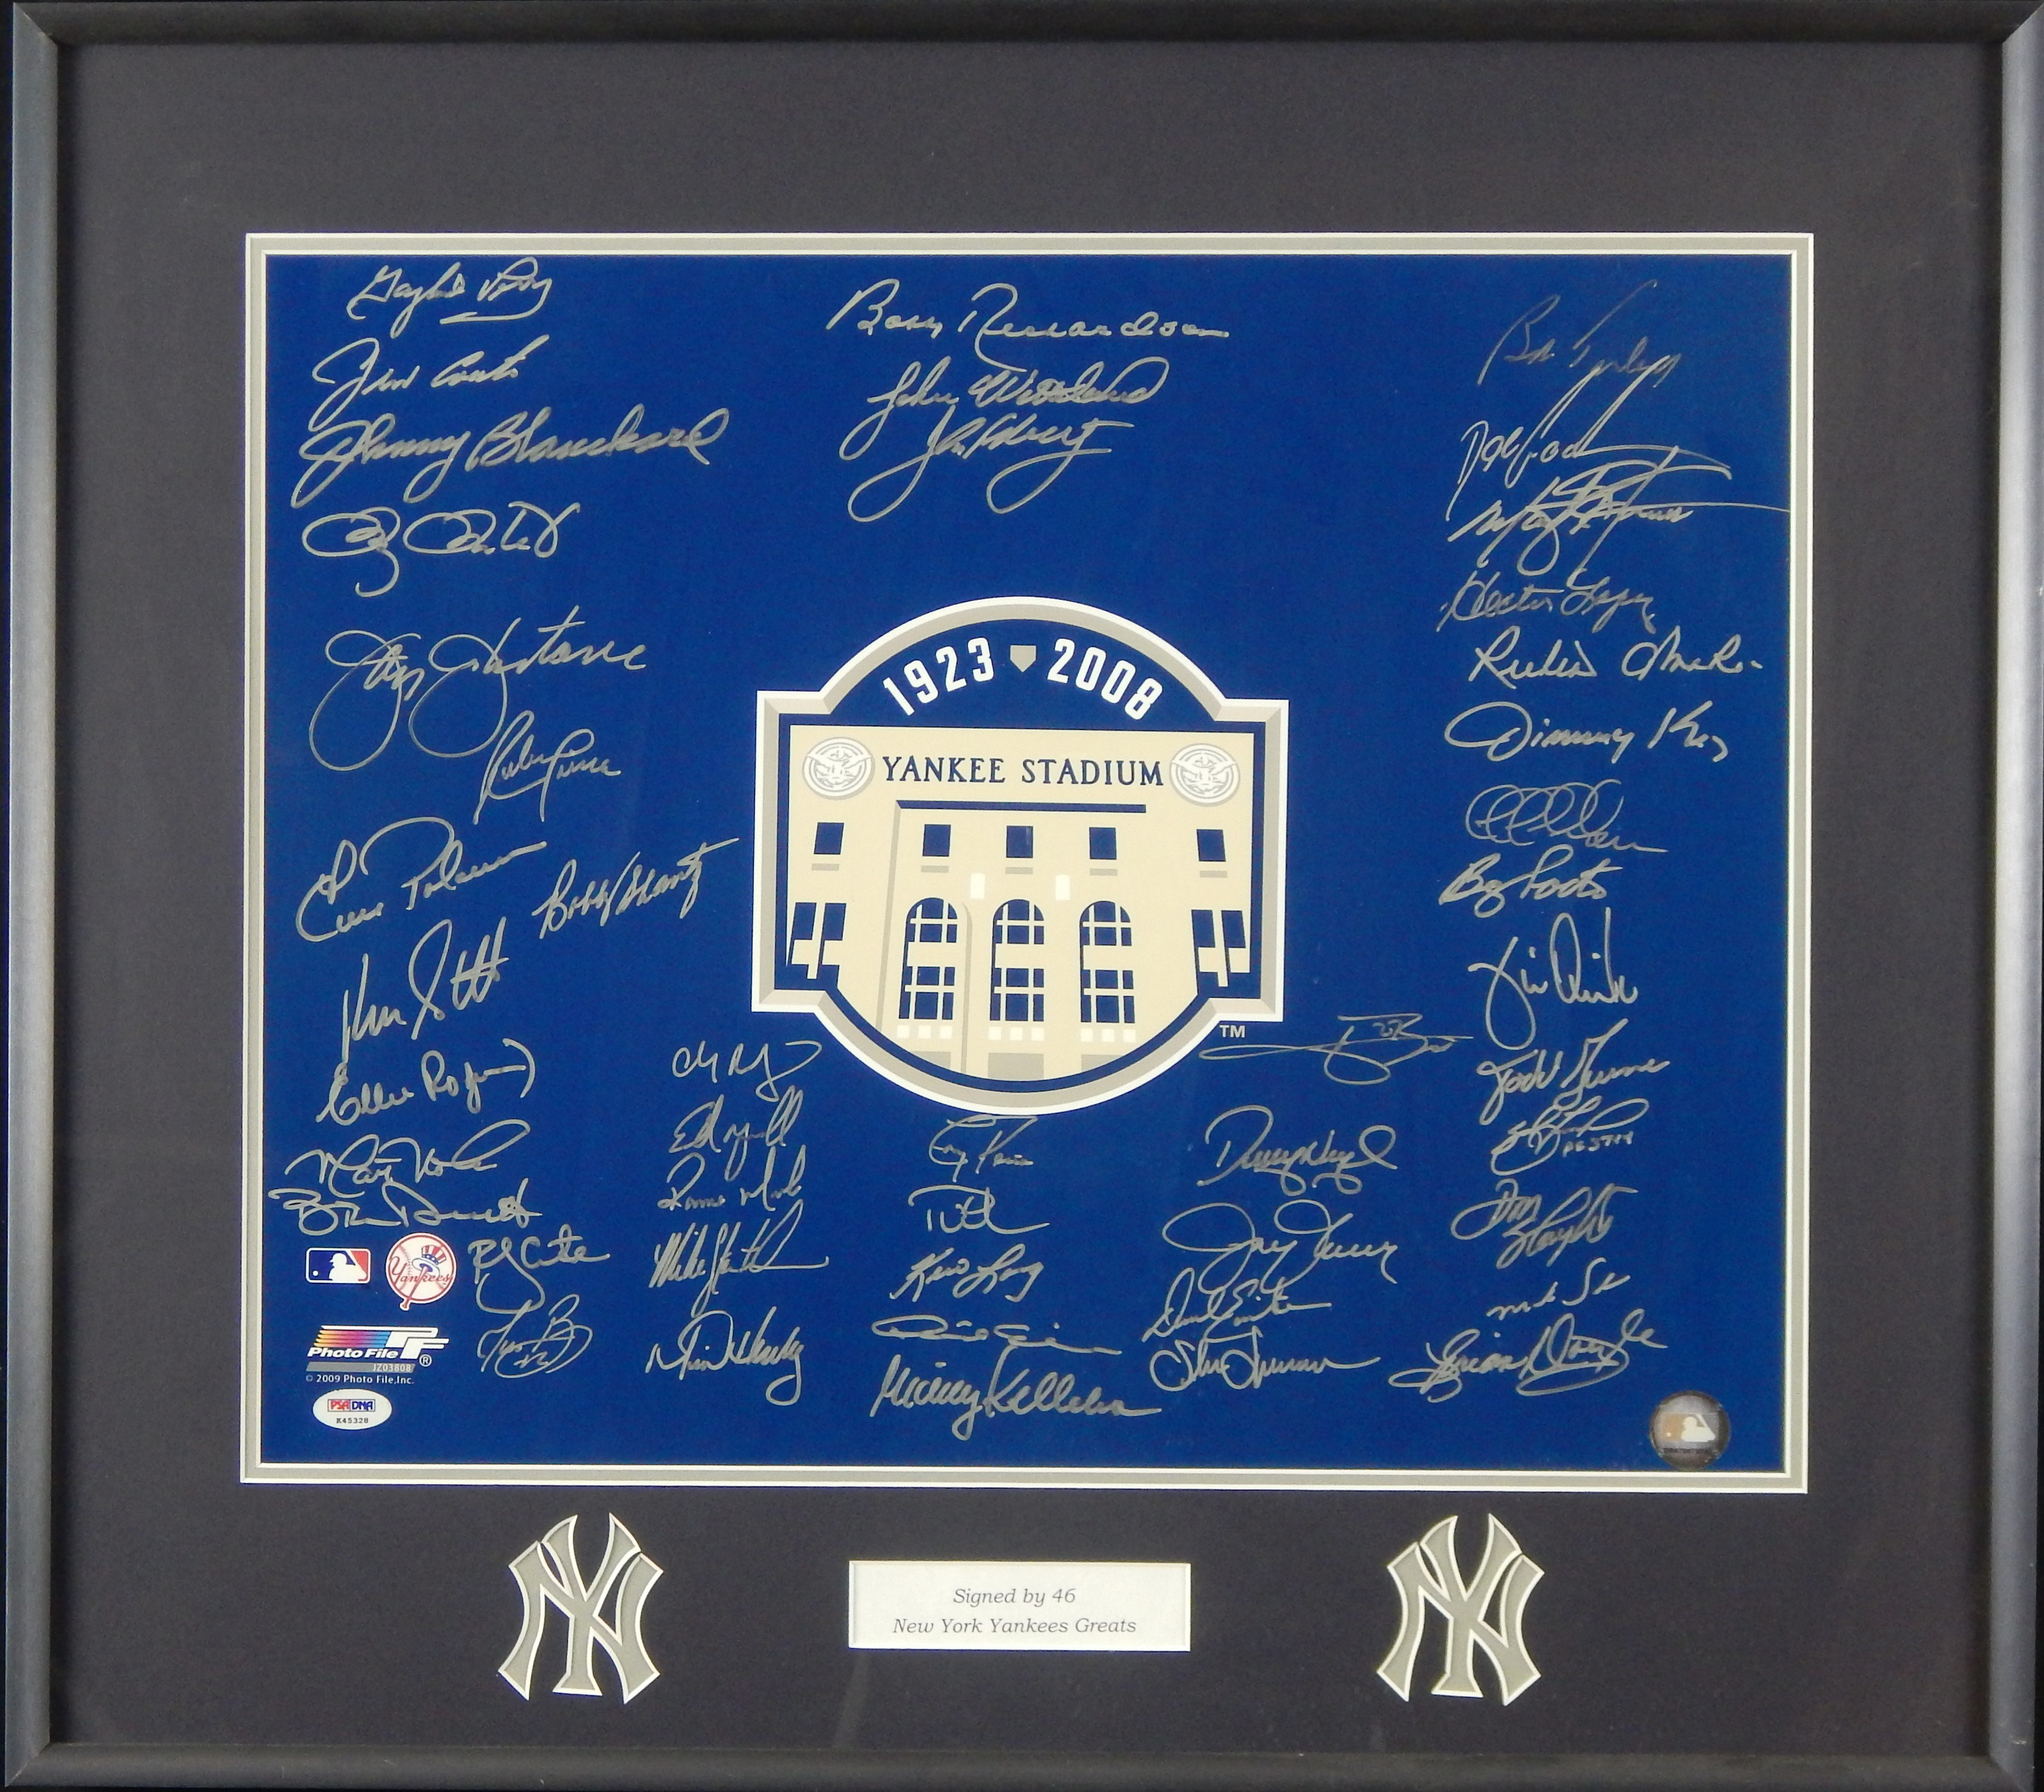 2008 New York Yankees Greats Signed Photo (PSA/DNA)